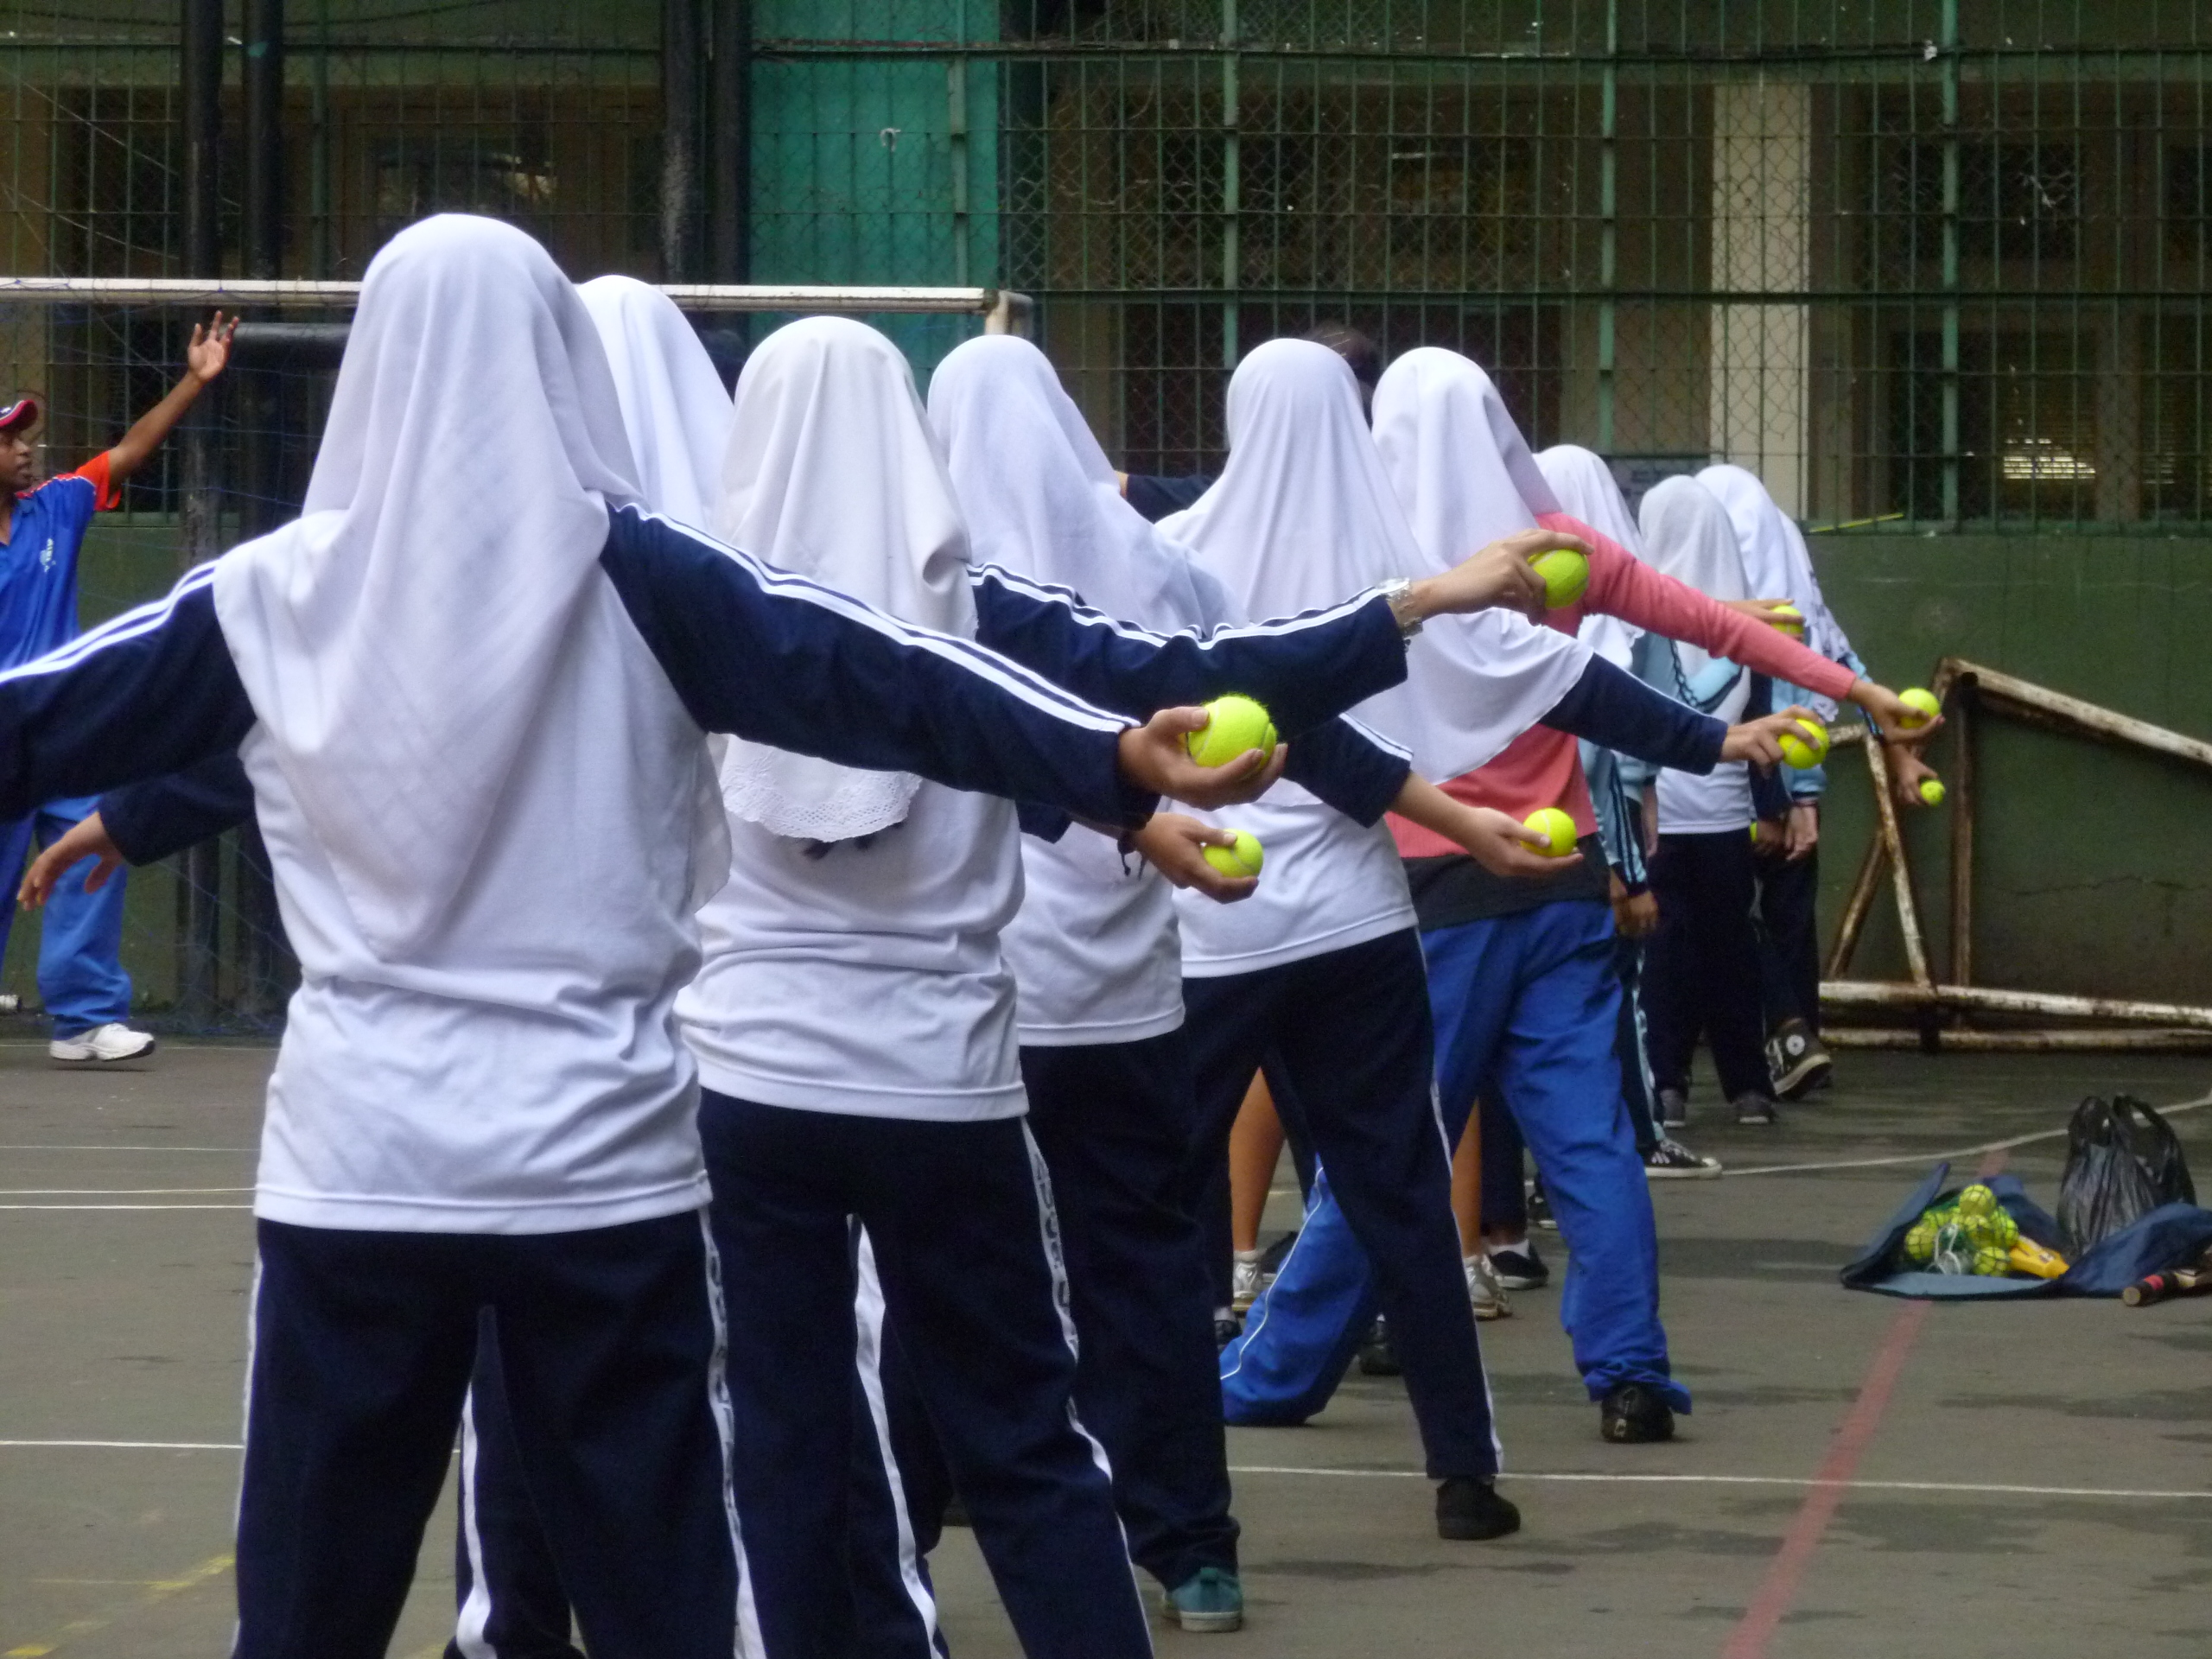 Indonesian school girls learning to play cricket. DFAT